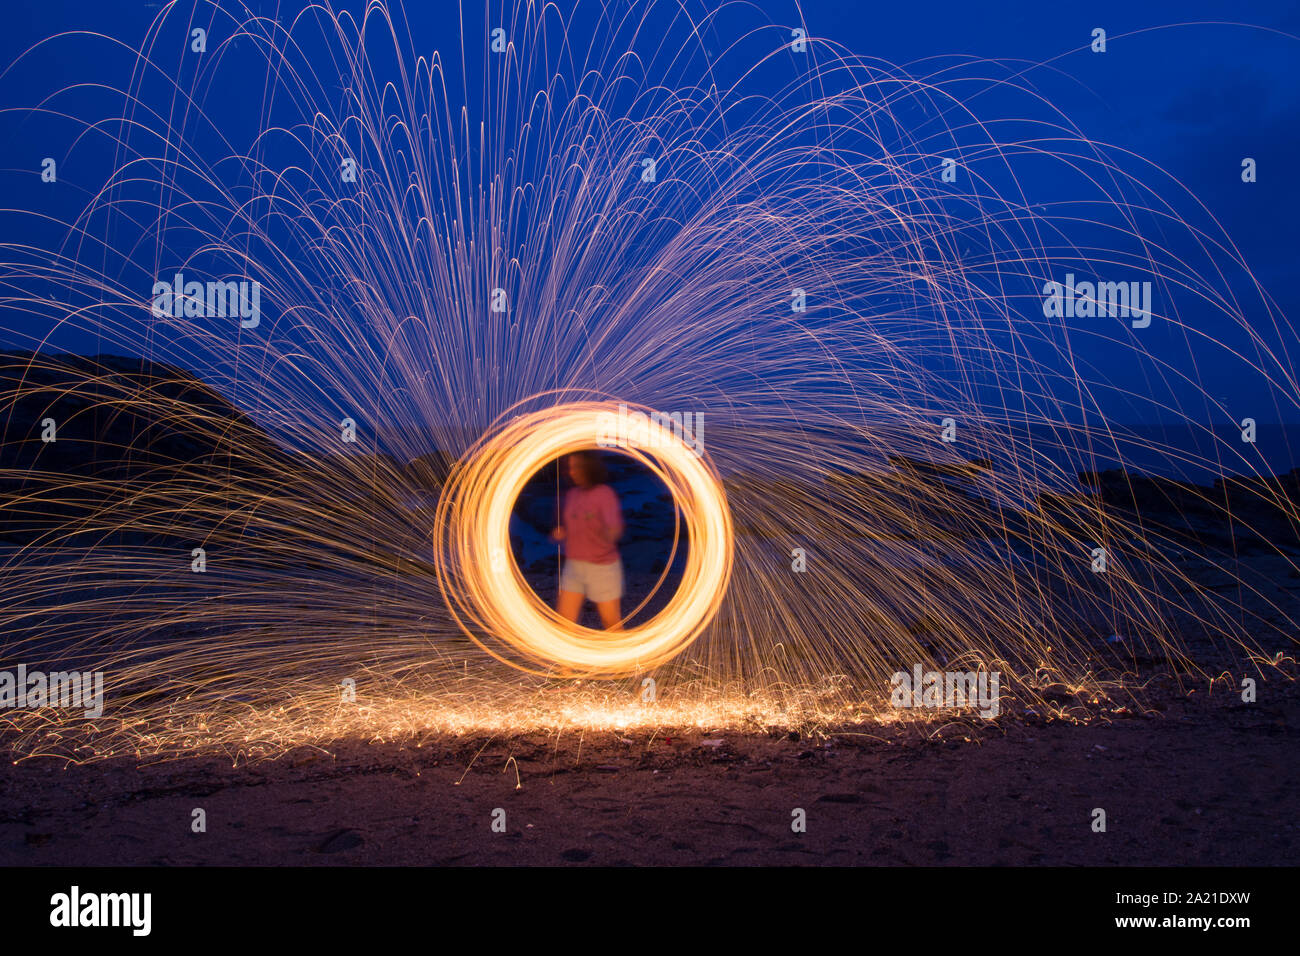 A woman doing circular spinning light painting using steel wool at night on the beach. Stock Photo